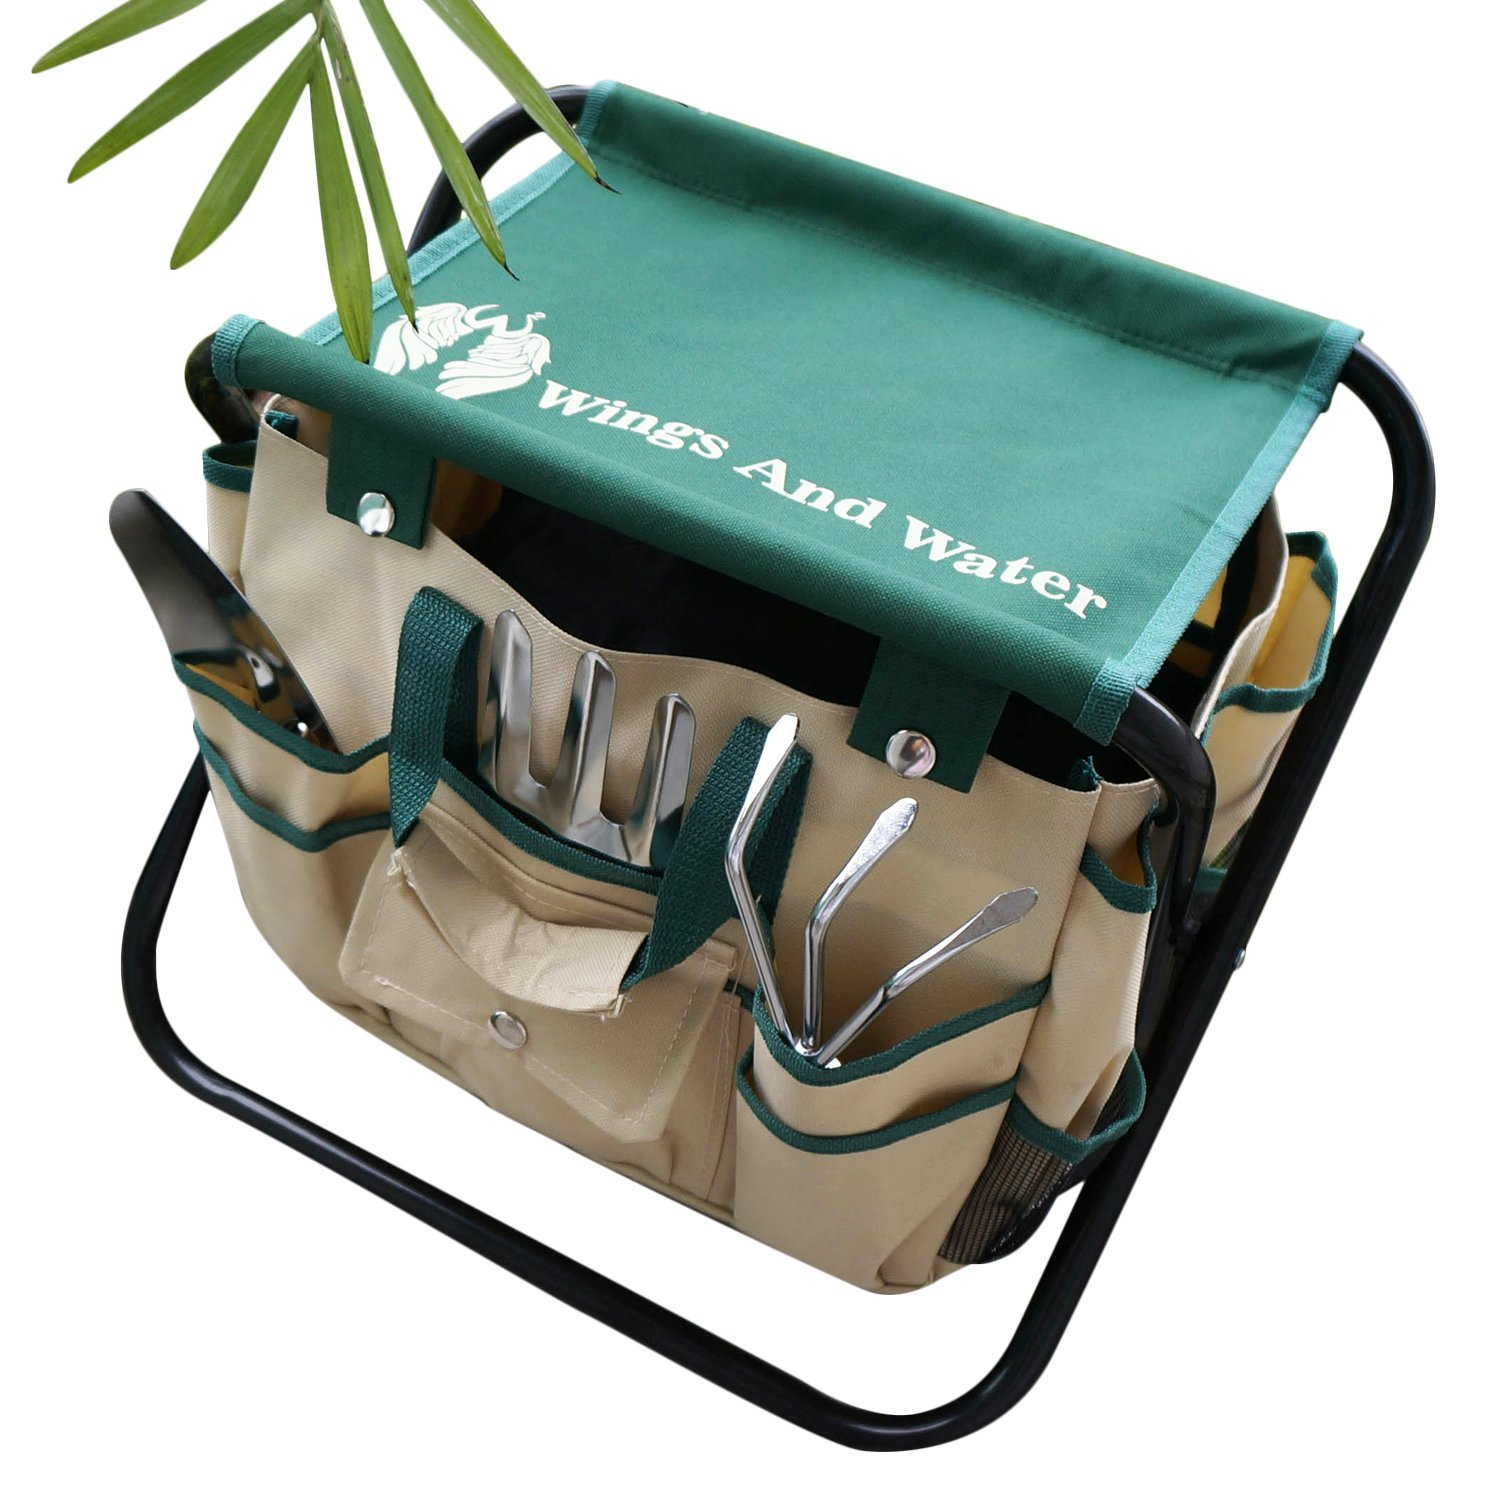 Wings and Water 7 Piece Garden Tool Set, All-In-One Tool Bag, Durable Folding Stool, Stainless Steel by Wings and Water (Image #3)